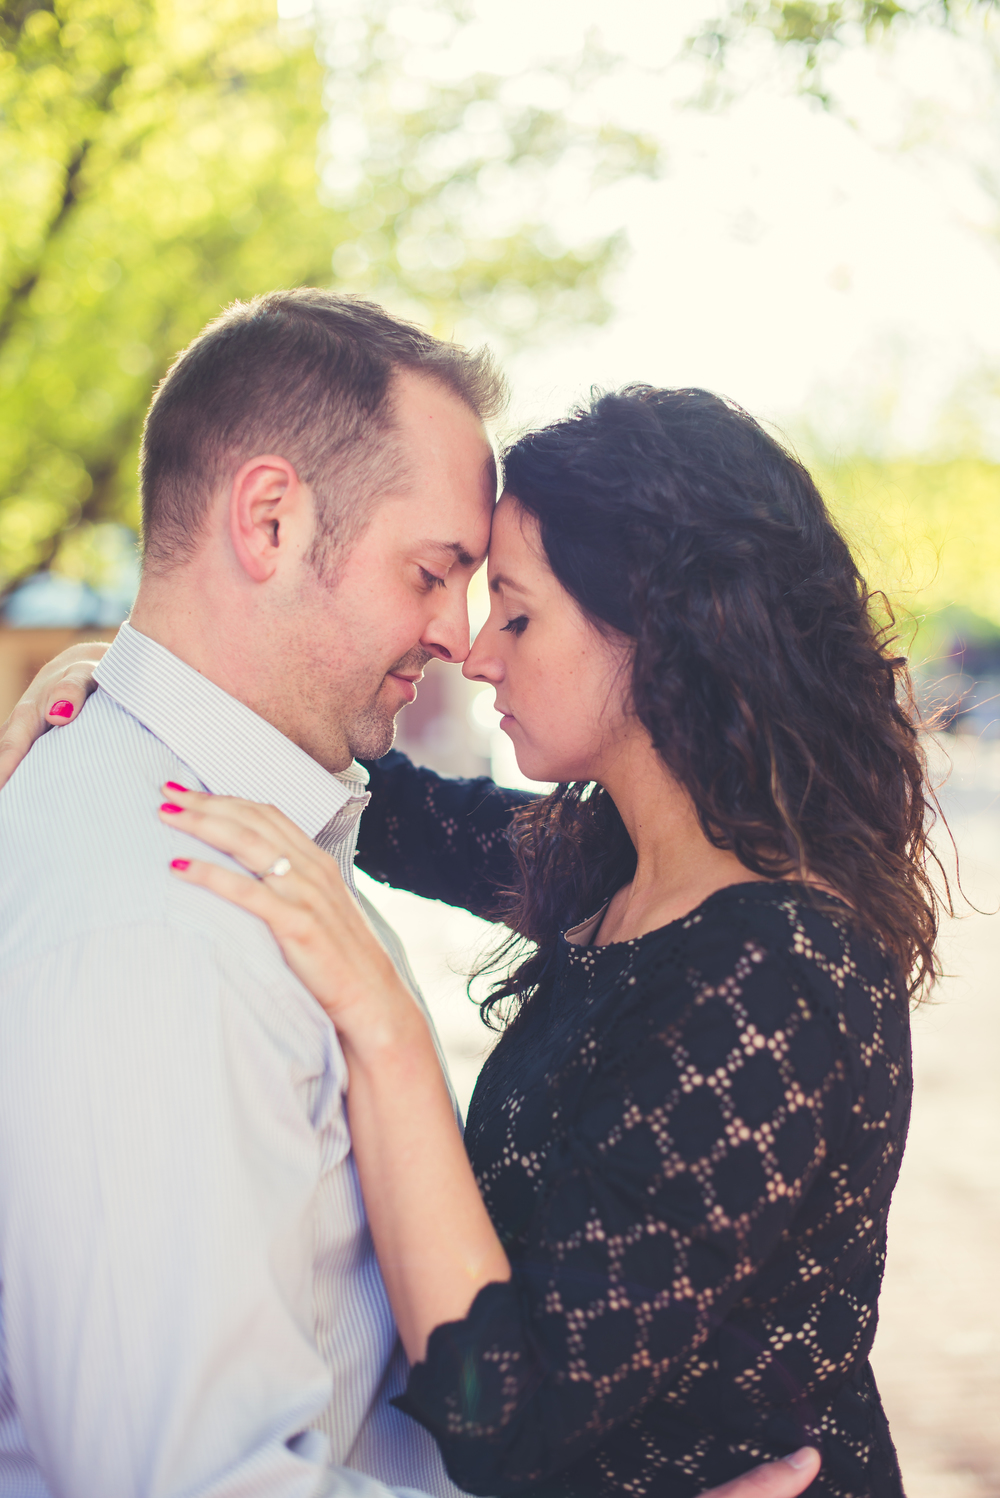 By Kara Photo-Engagement-Engagement Photography-Central Illinois-Central Illinois Wedding and Portrait Photographer-Springfield Illinois